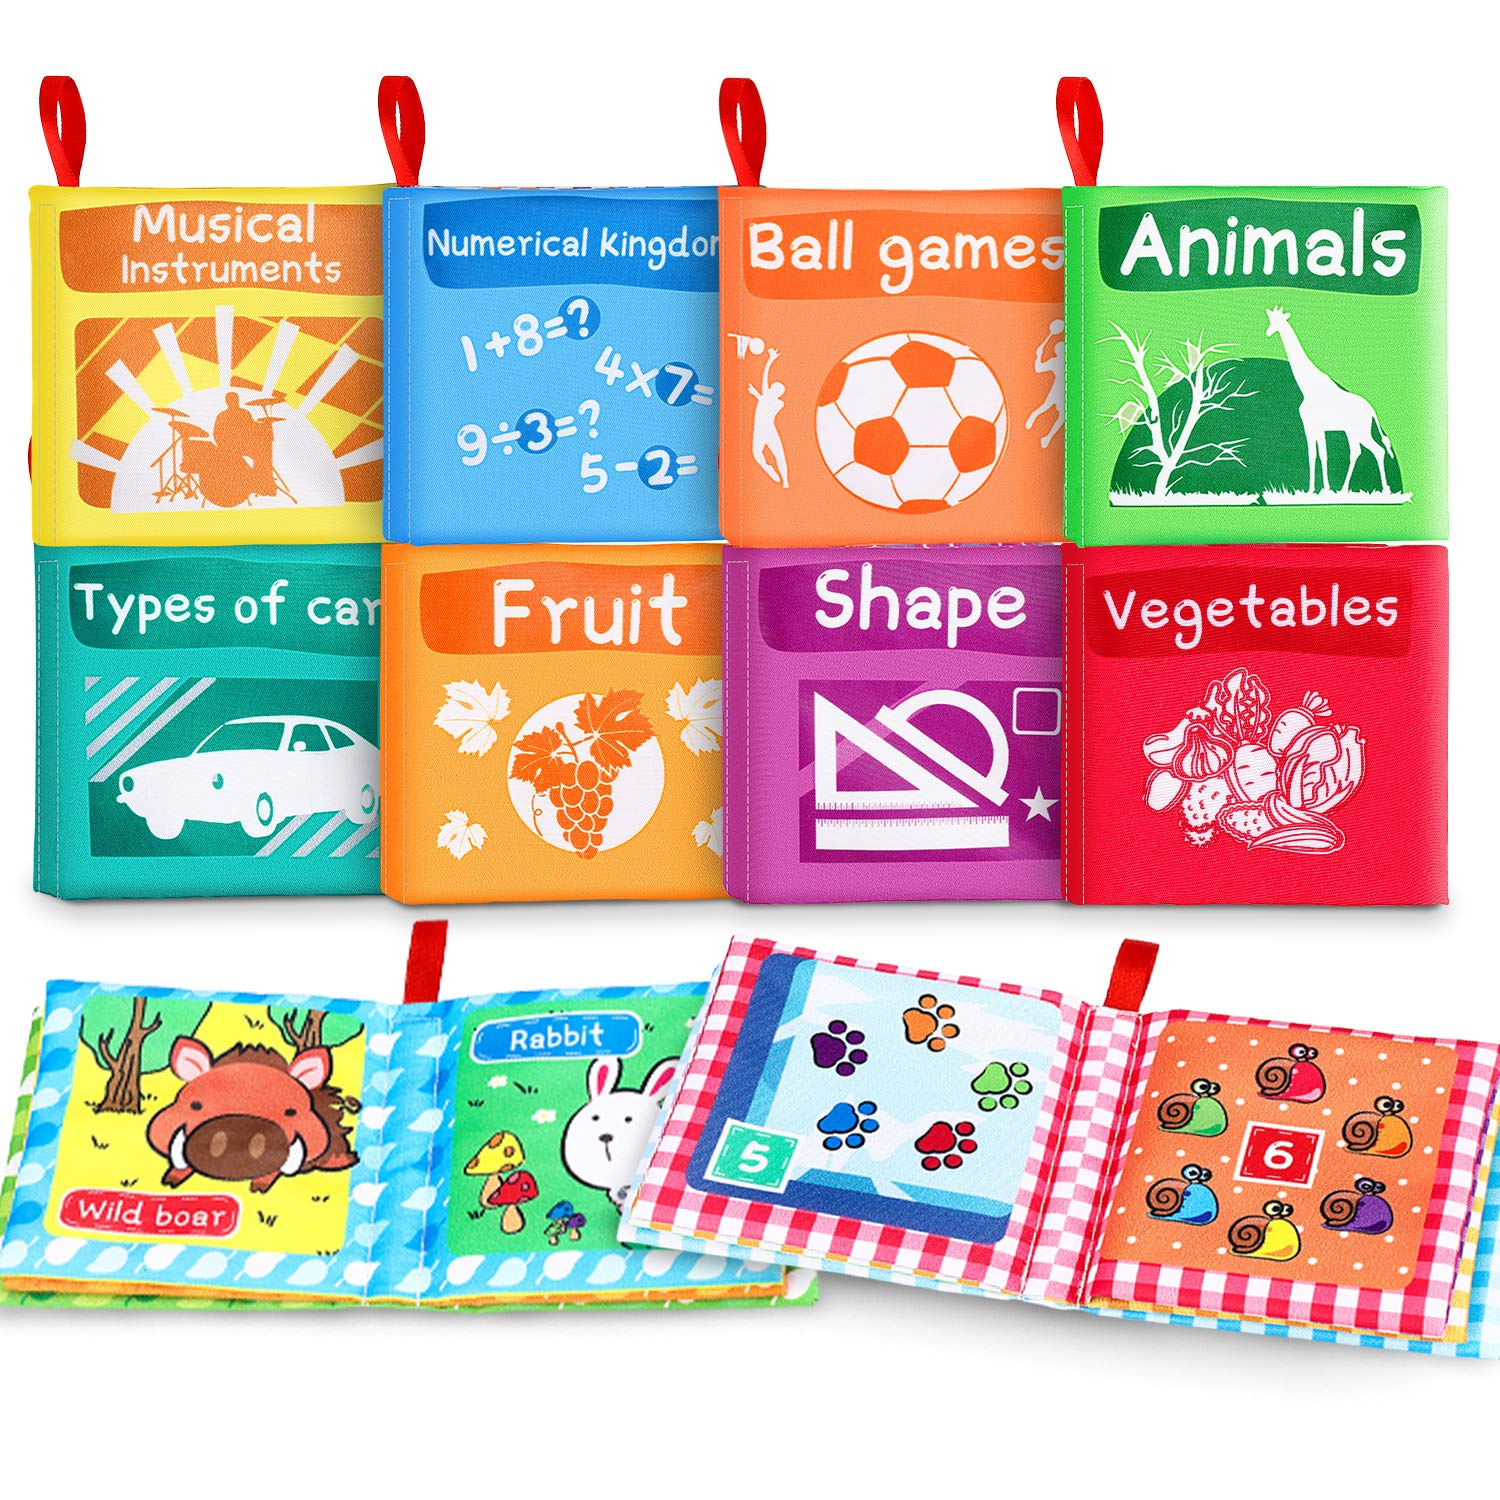 Magicfun Cloth Books for Babies, Baby Books First Year Touch and Feel Crinkle Crinkle Cloth Book for Toddler Infants Learning Toys for Early Development Pack of 8 (with a Rustling Sound)